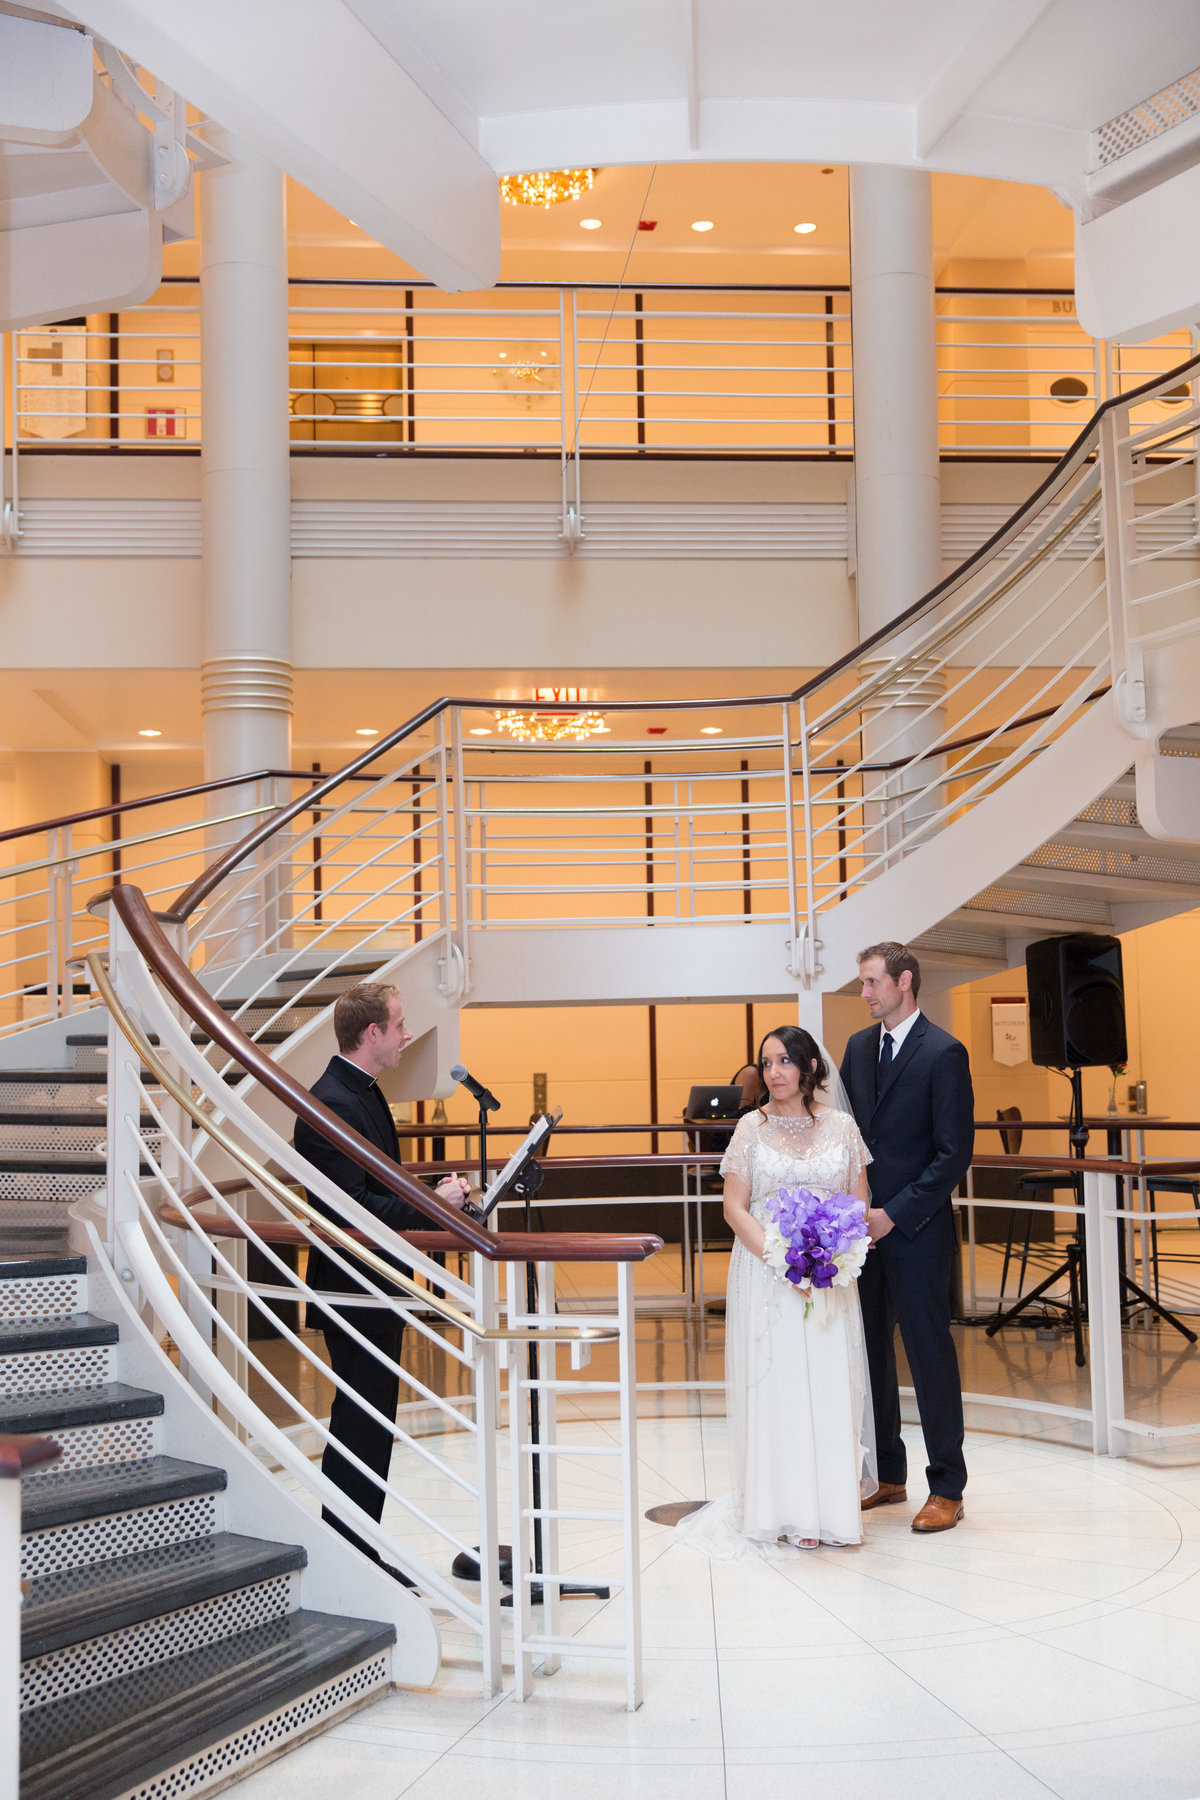 Chicago-Symphony-Orchestra-Wedding-070